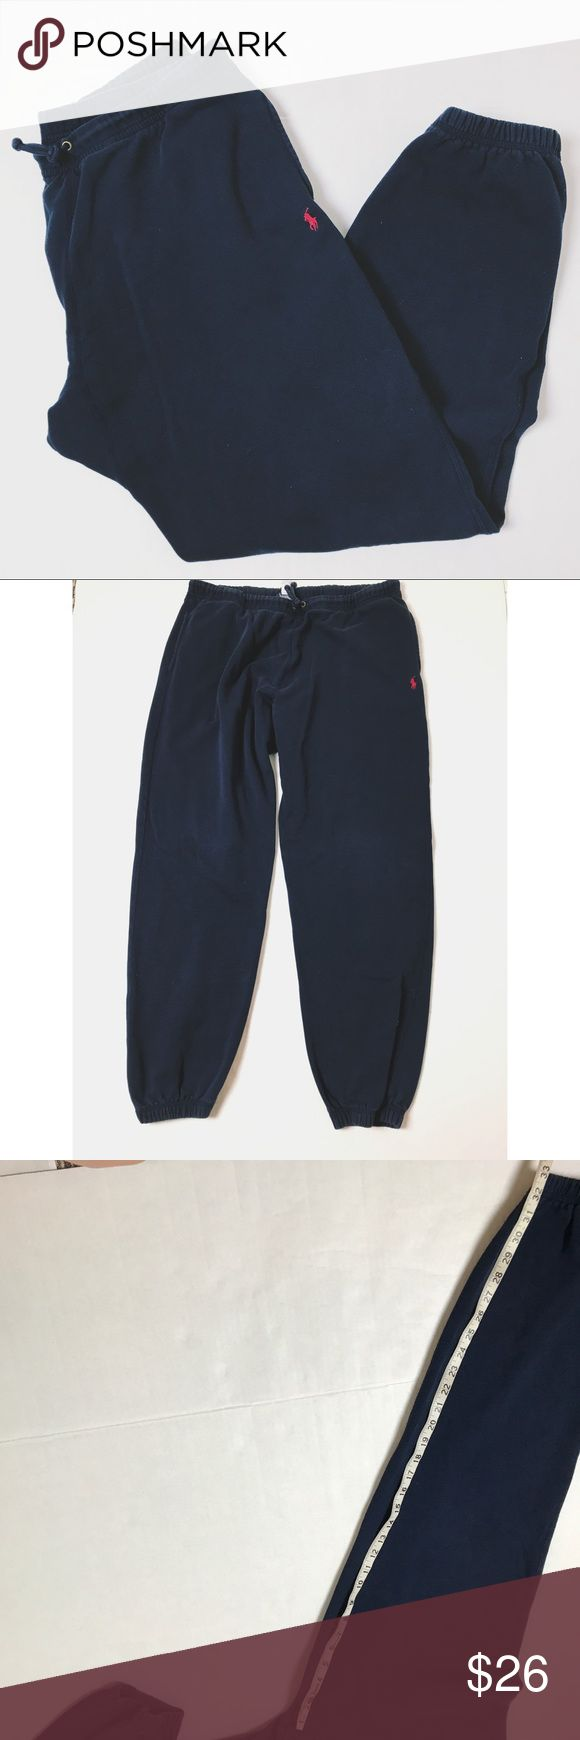 POLO Ralph Lauren Men's Sweatpants Navy Polo Sweatpants with red logo. Great condition! Polo by Ralph Lauren Pants Sweatpants & Joggers